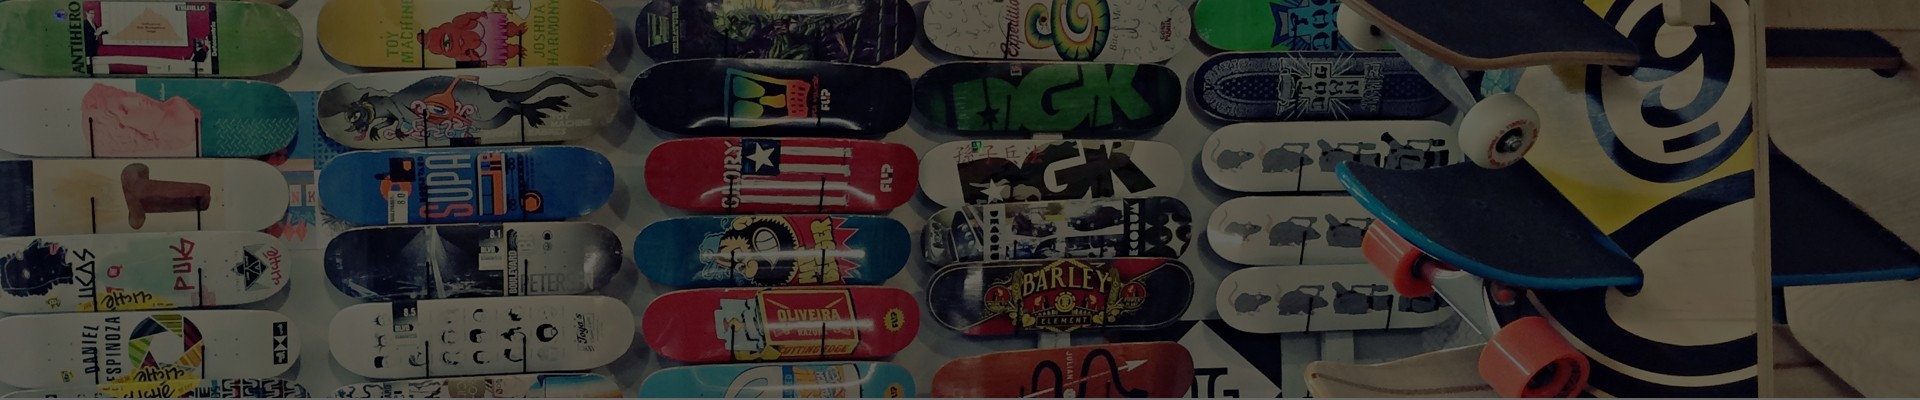 Skateboard Decks online | Buy Now on Xtreme-Skate.com